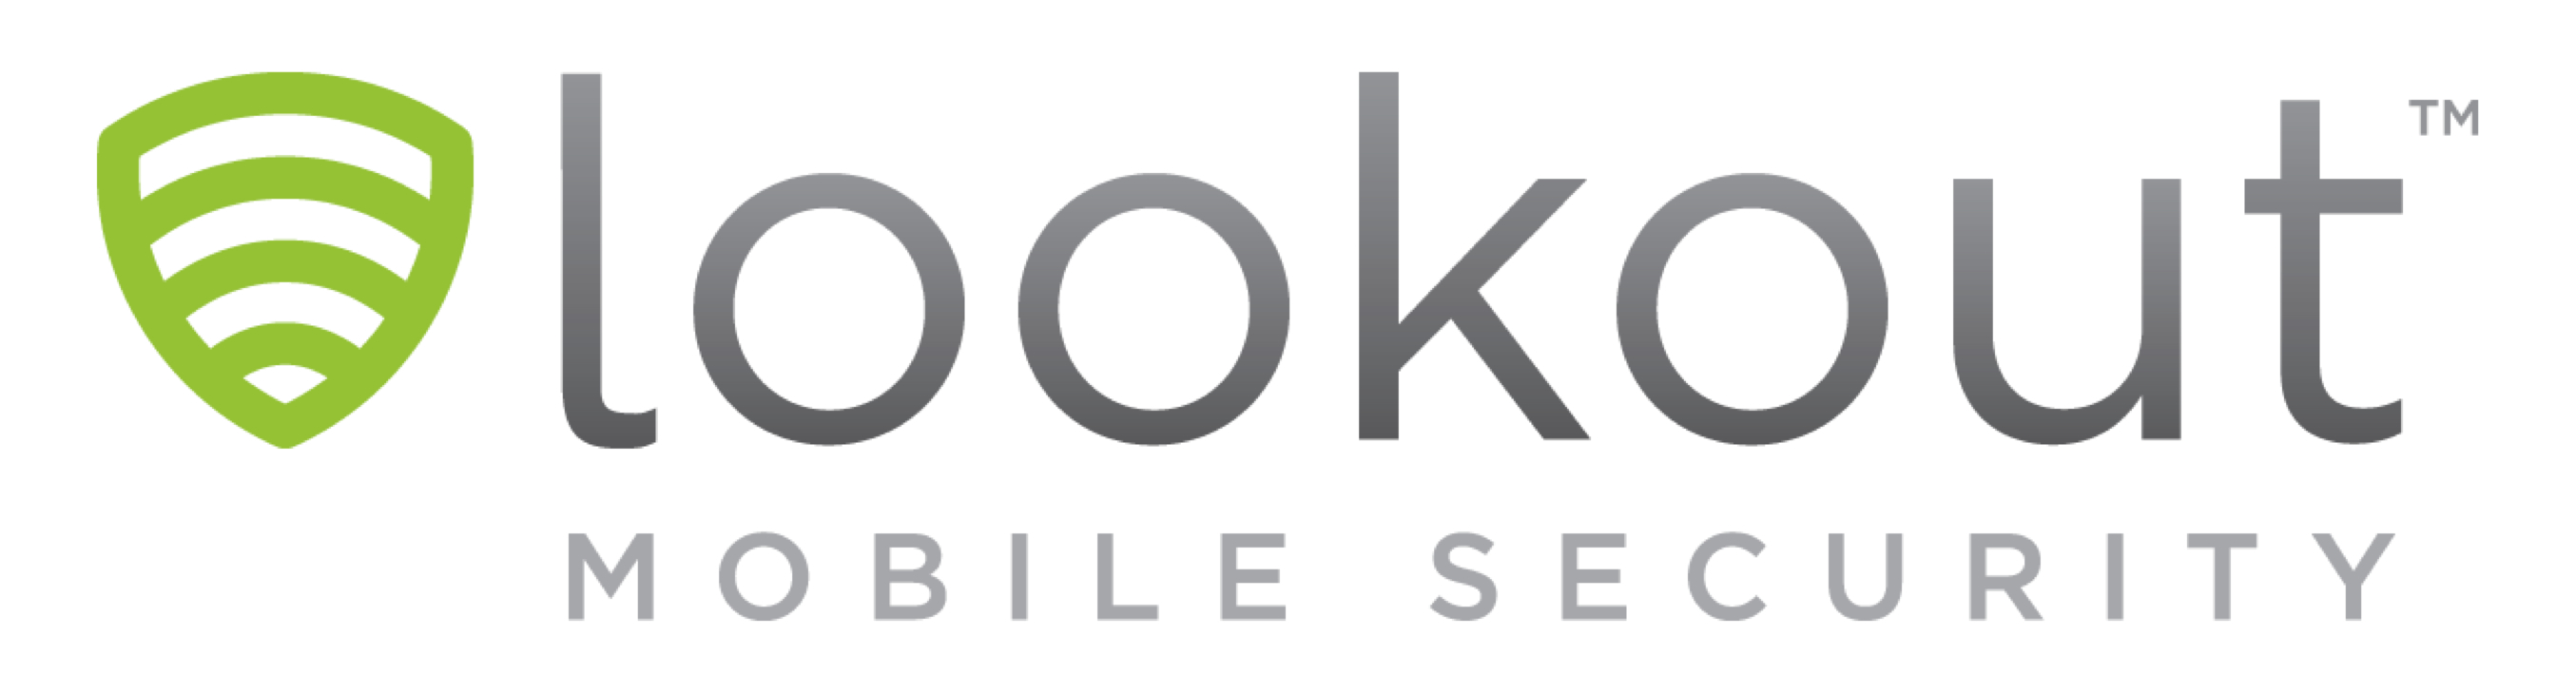 Image result for lookout logo